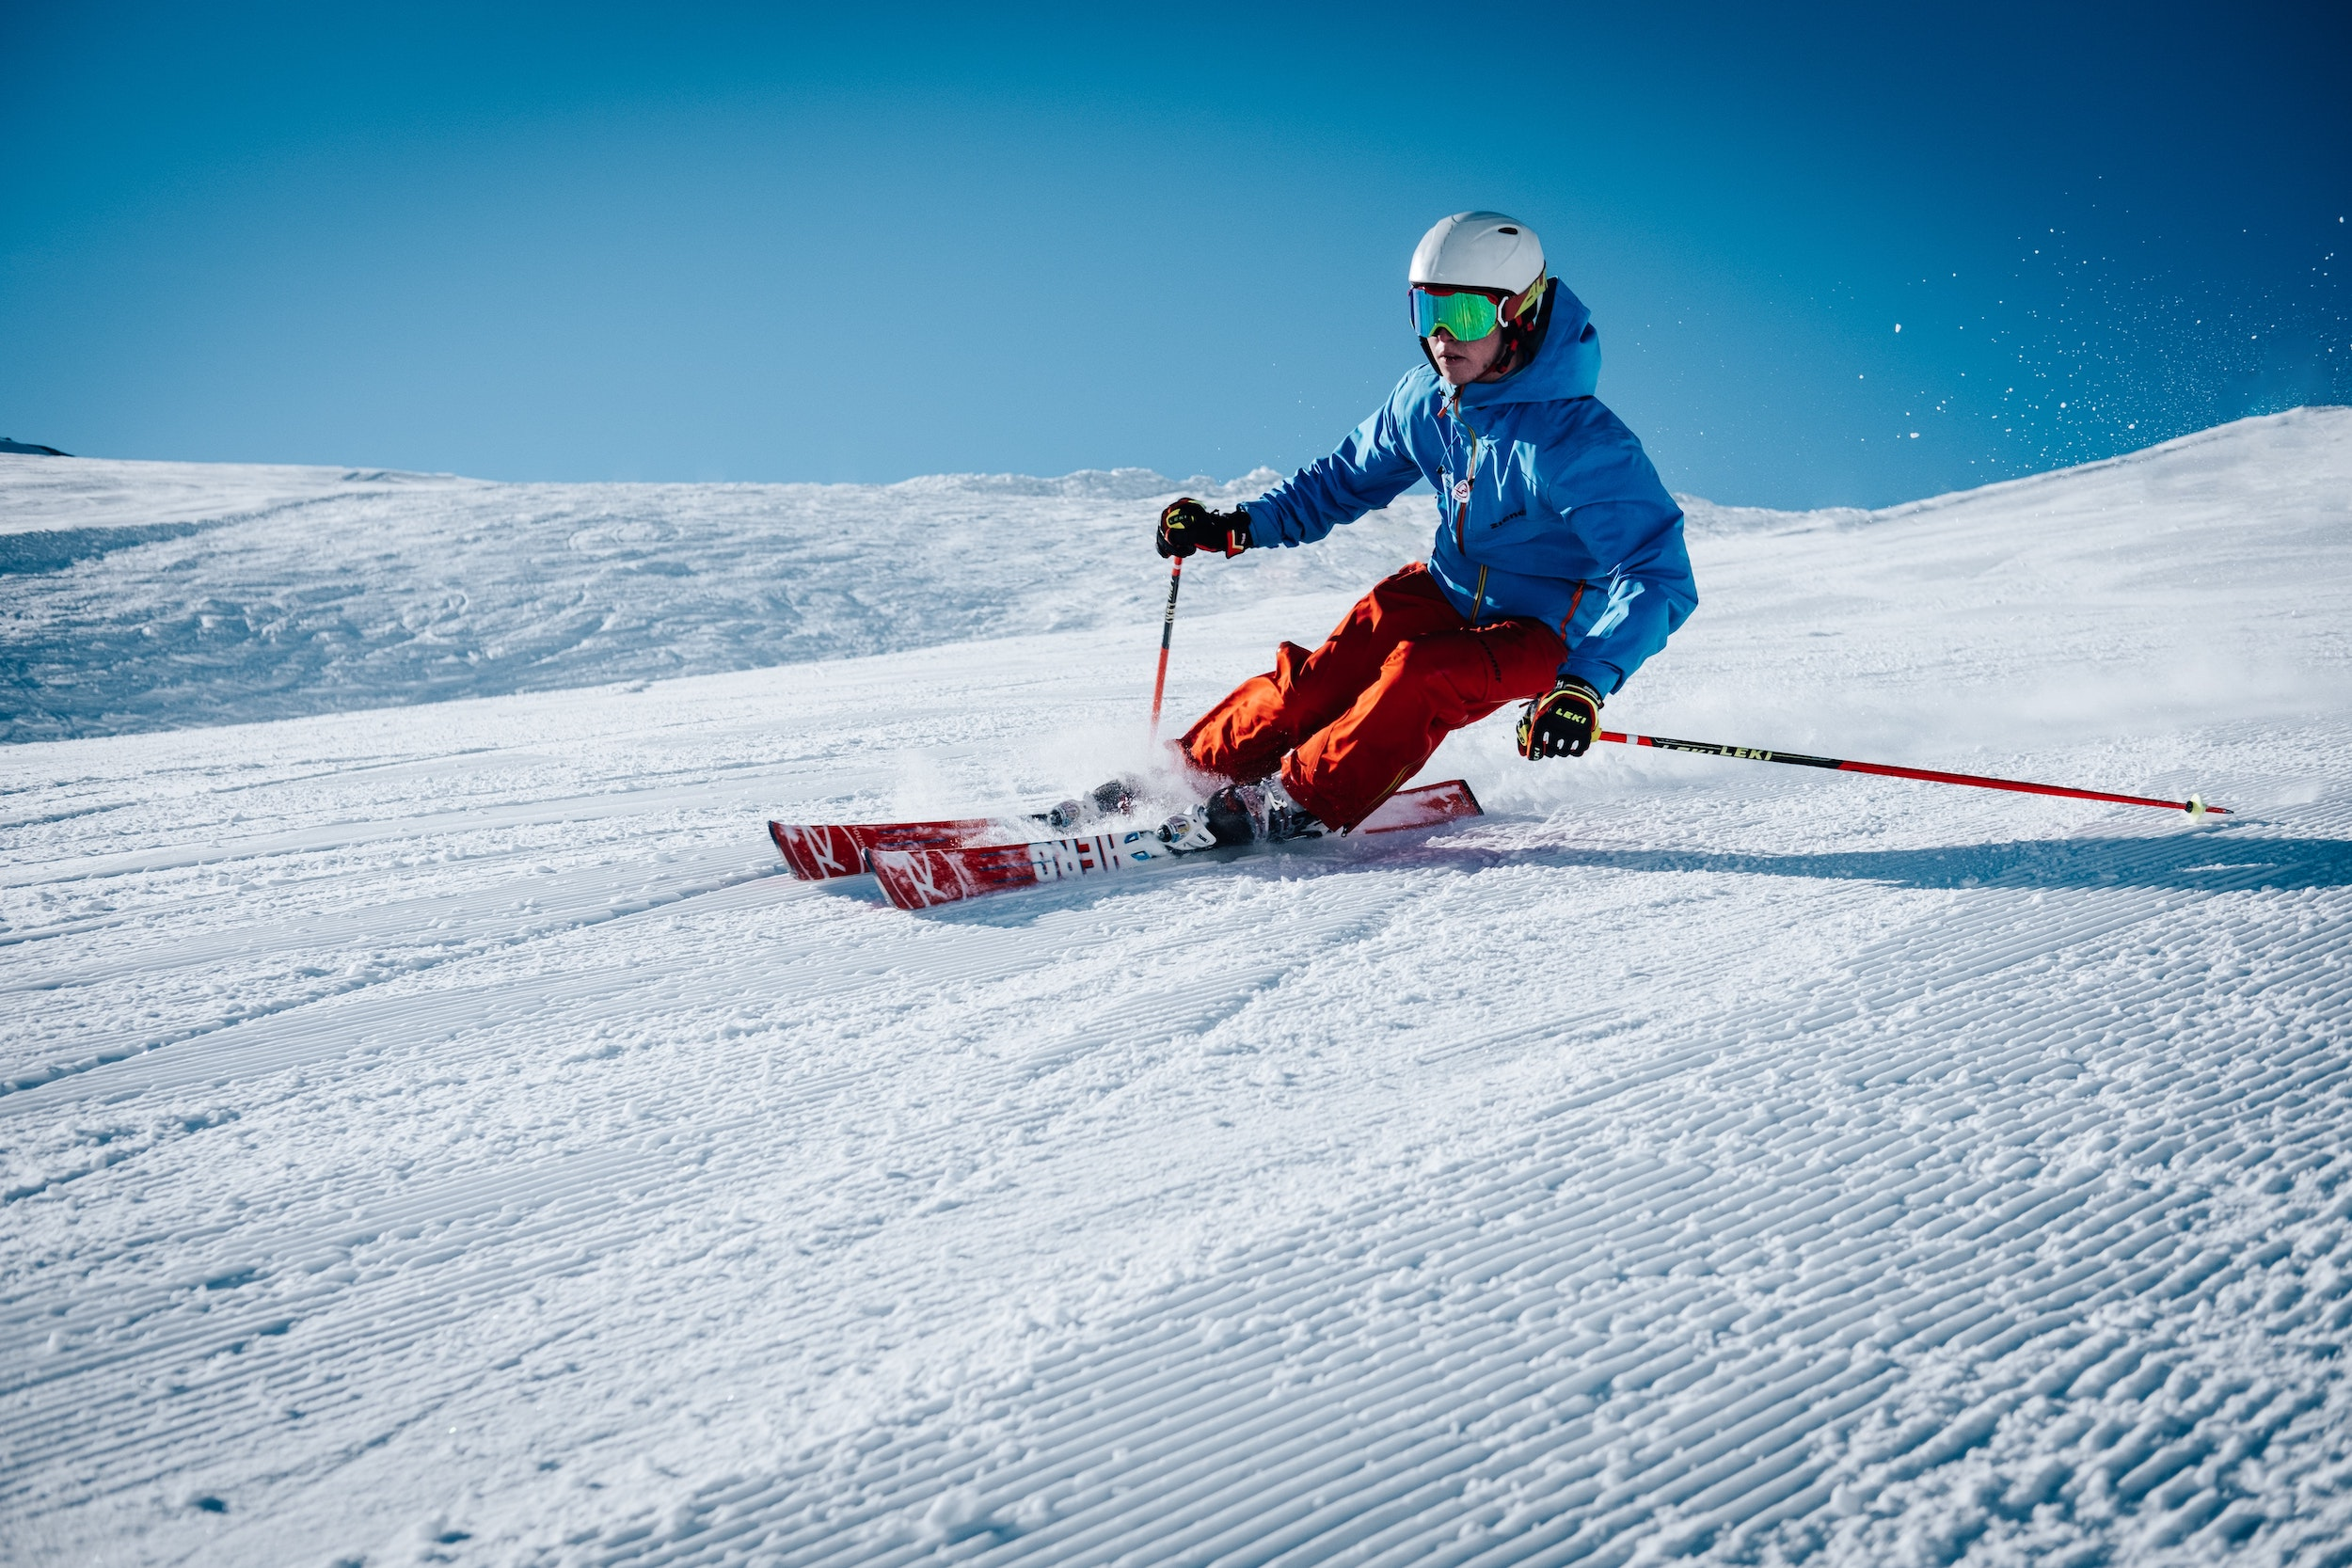 North America & its tremendous growth of ski resorts accessible by EV